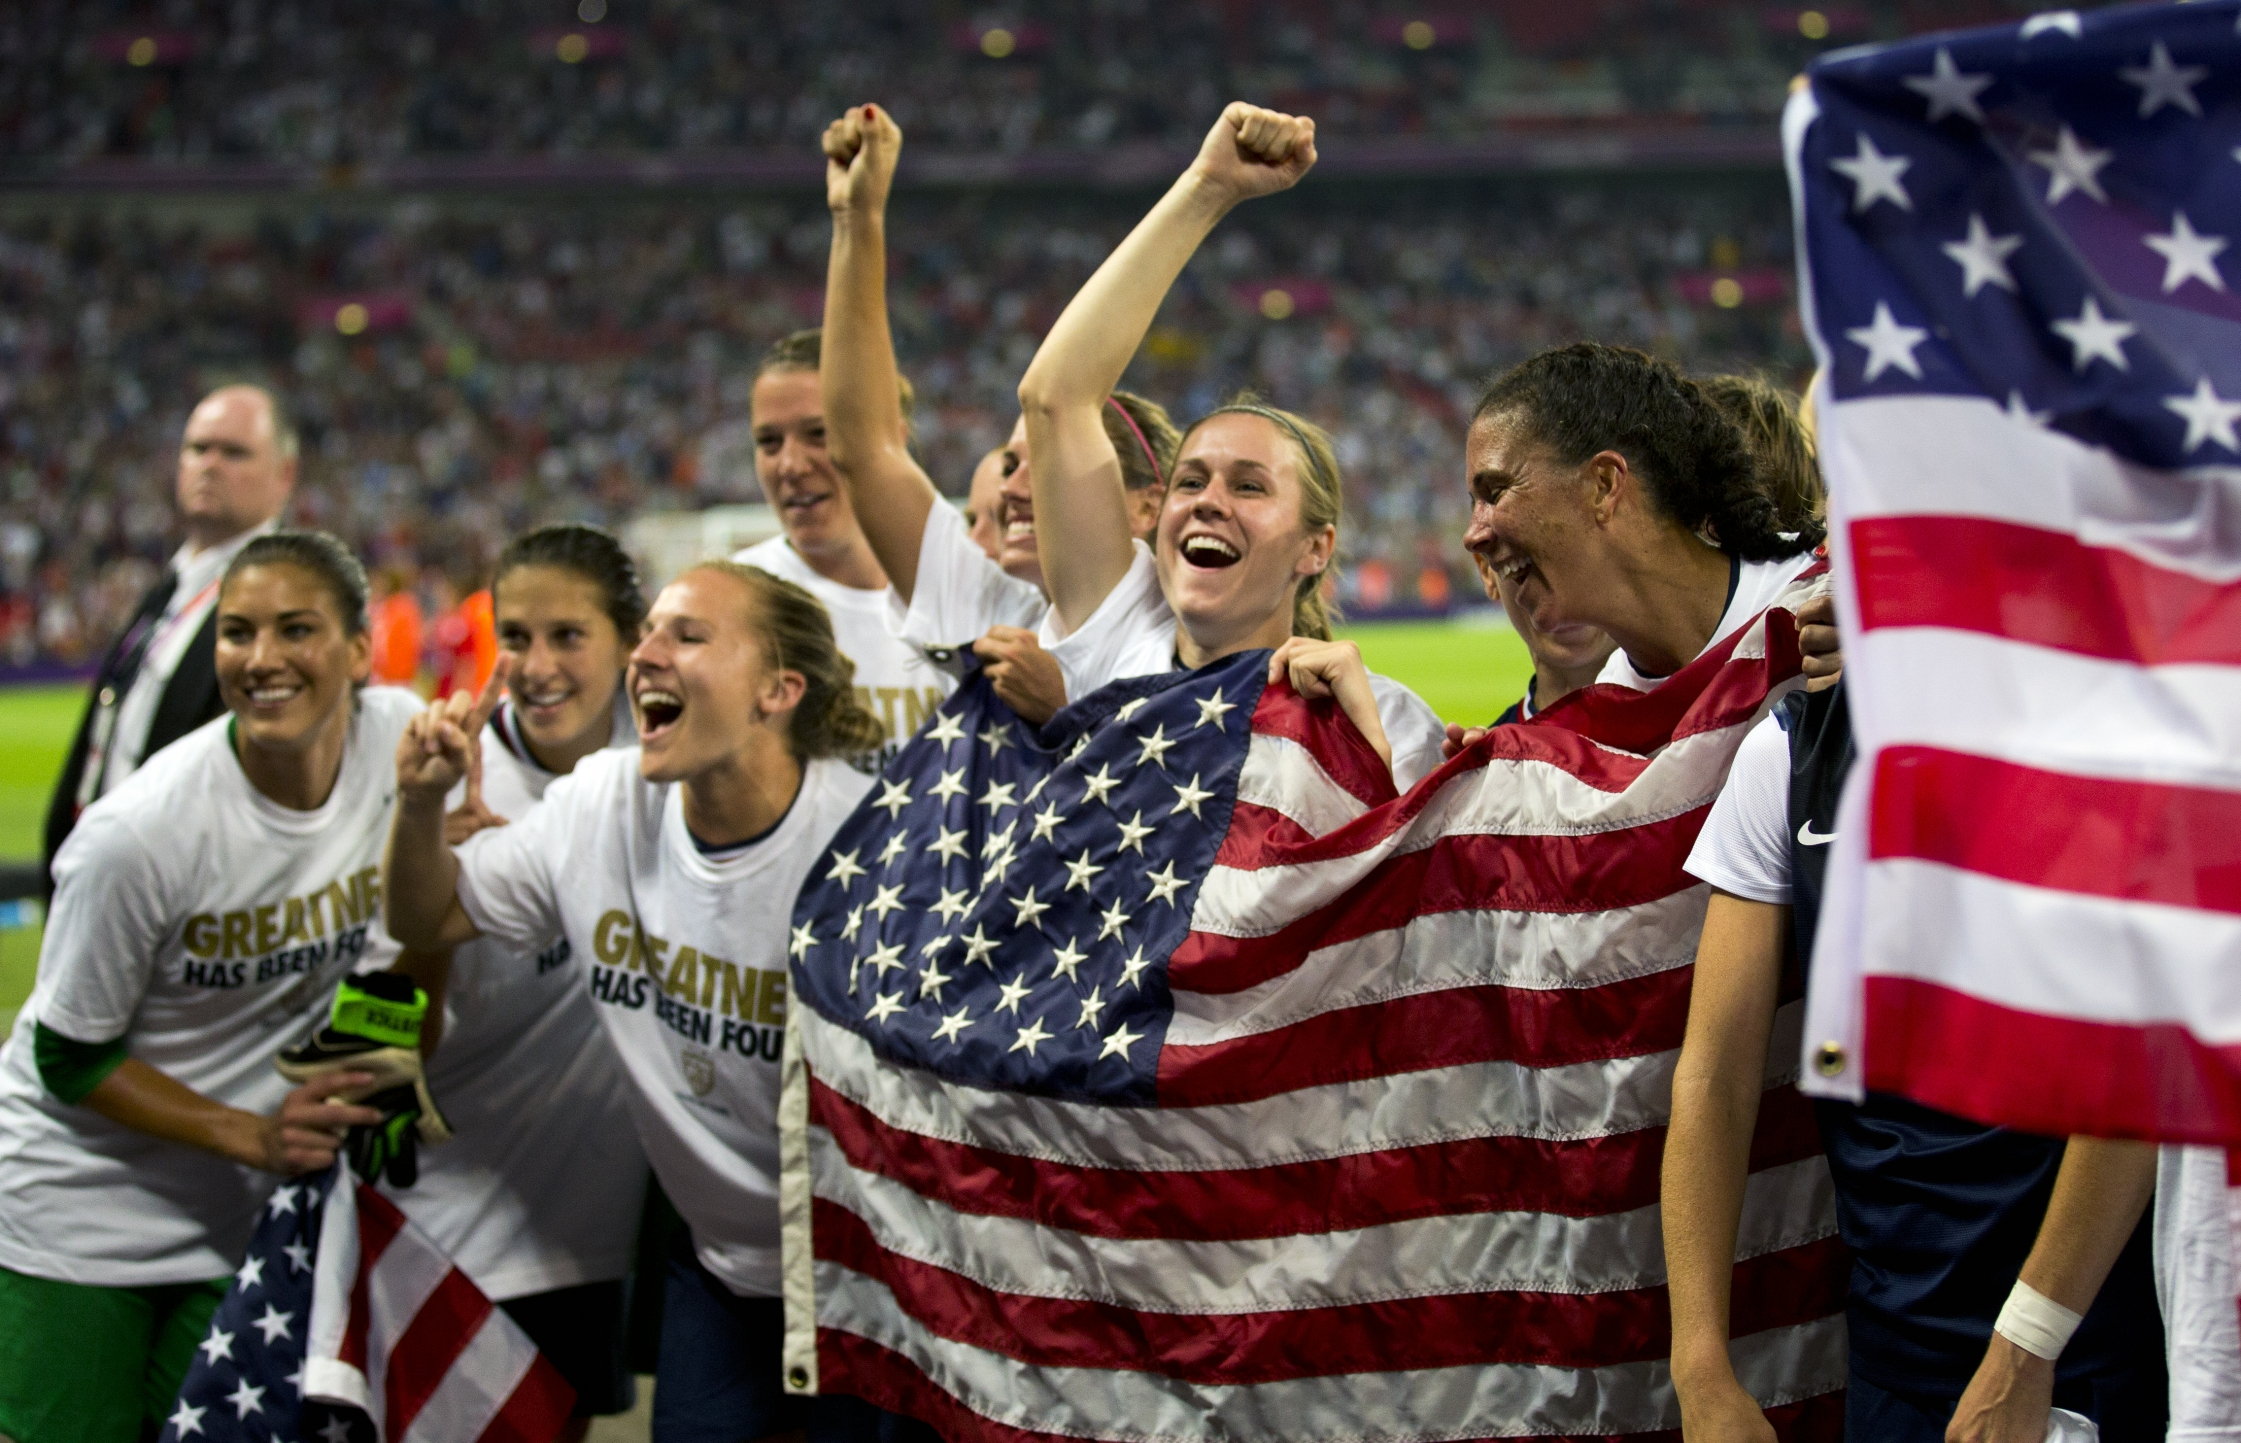 edges Japan to take third straight womens soccer gold 2241x1443